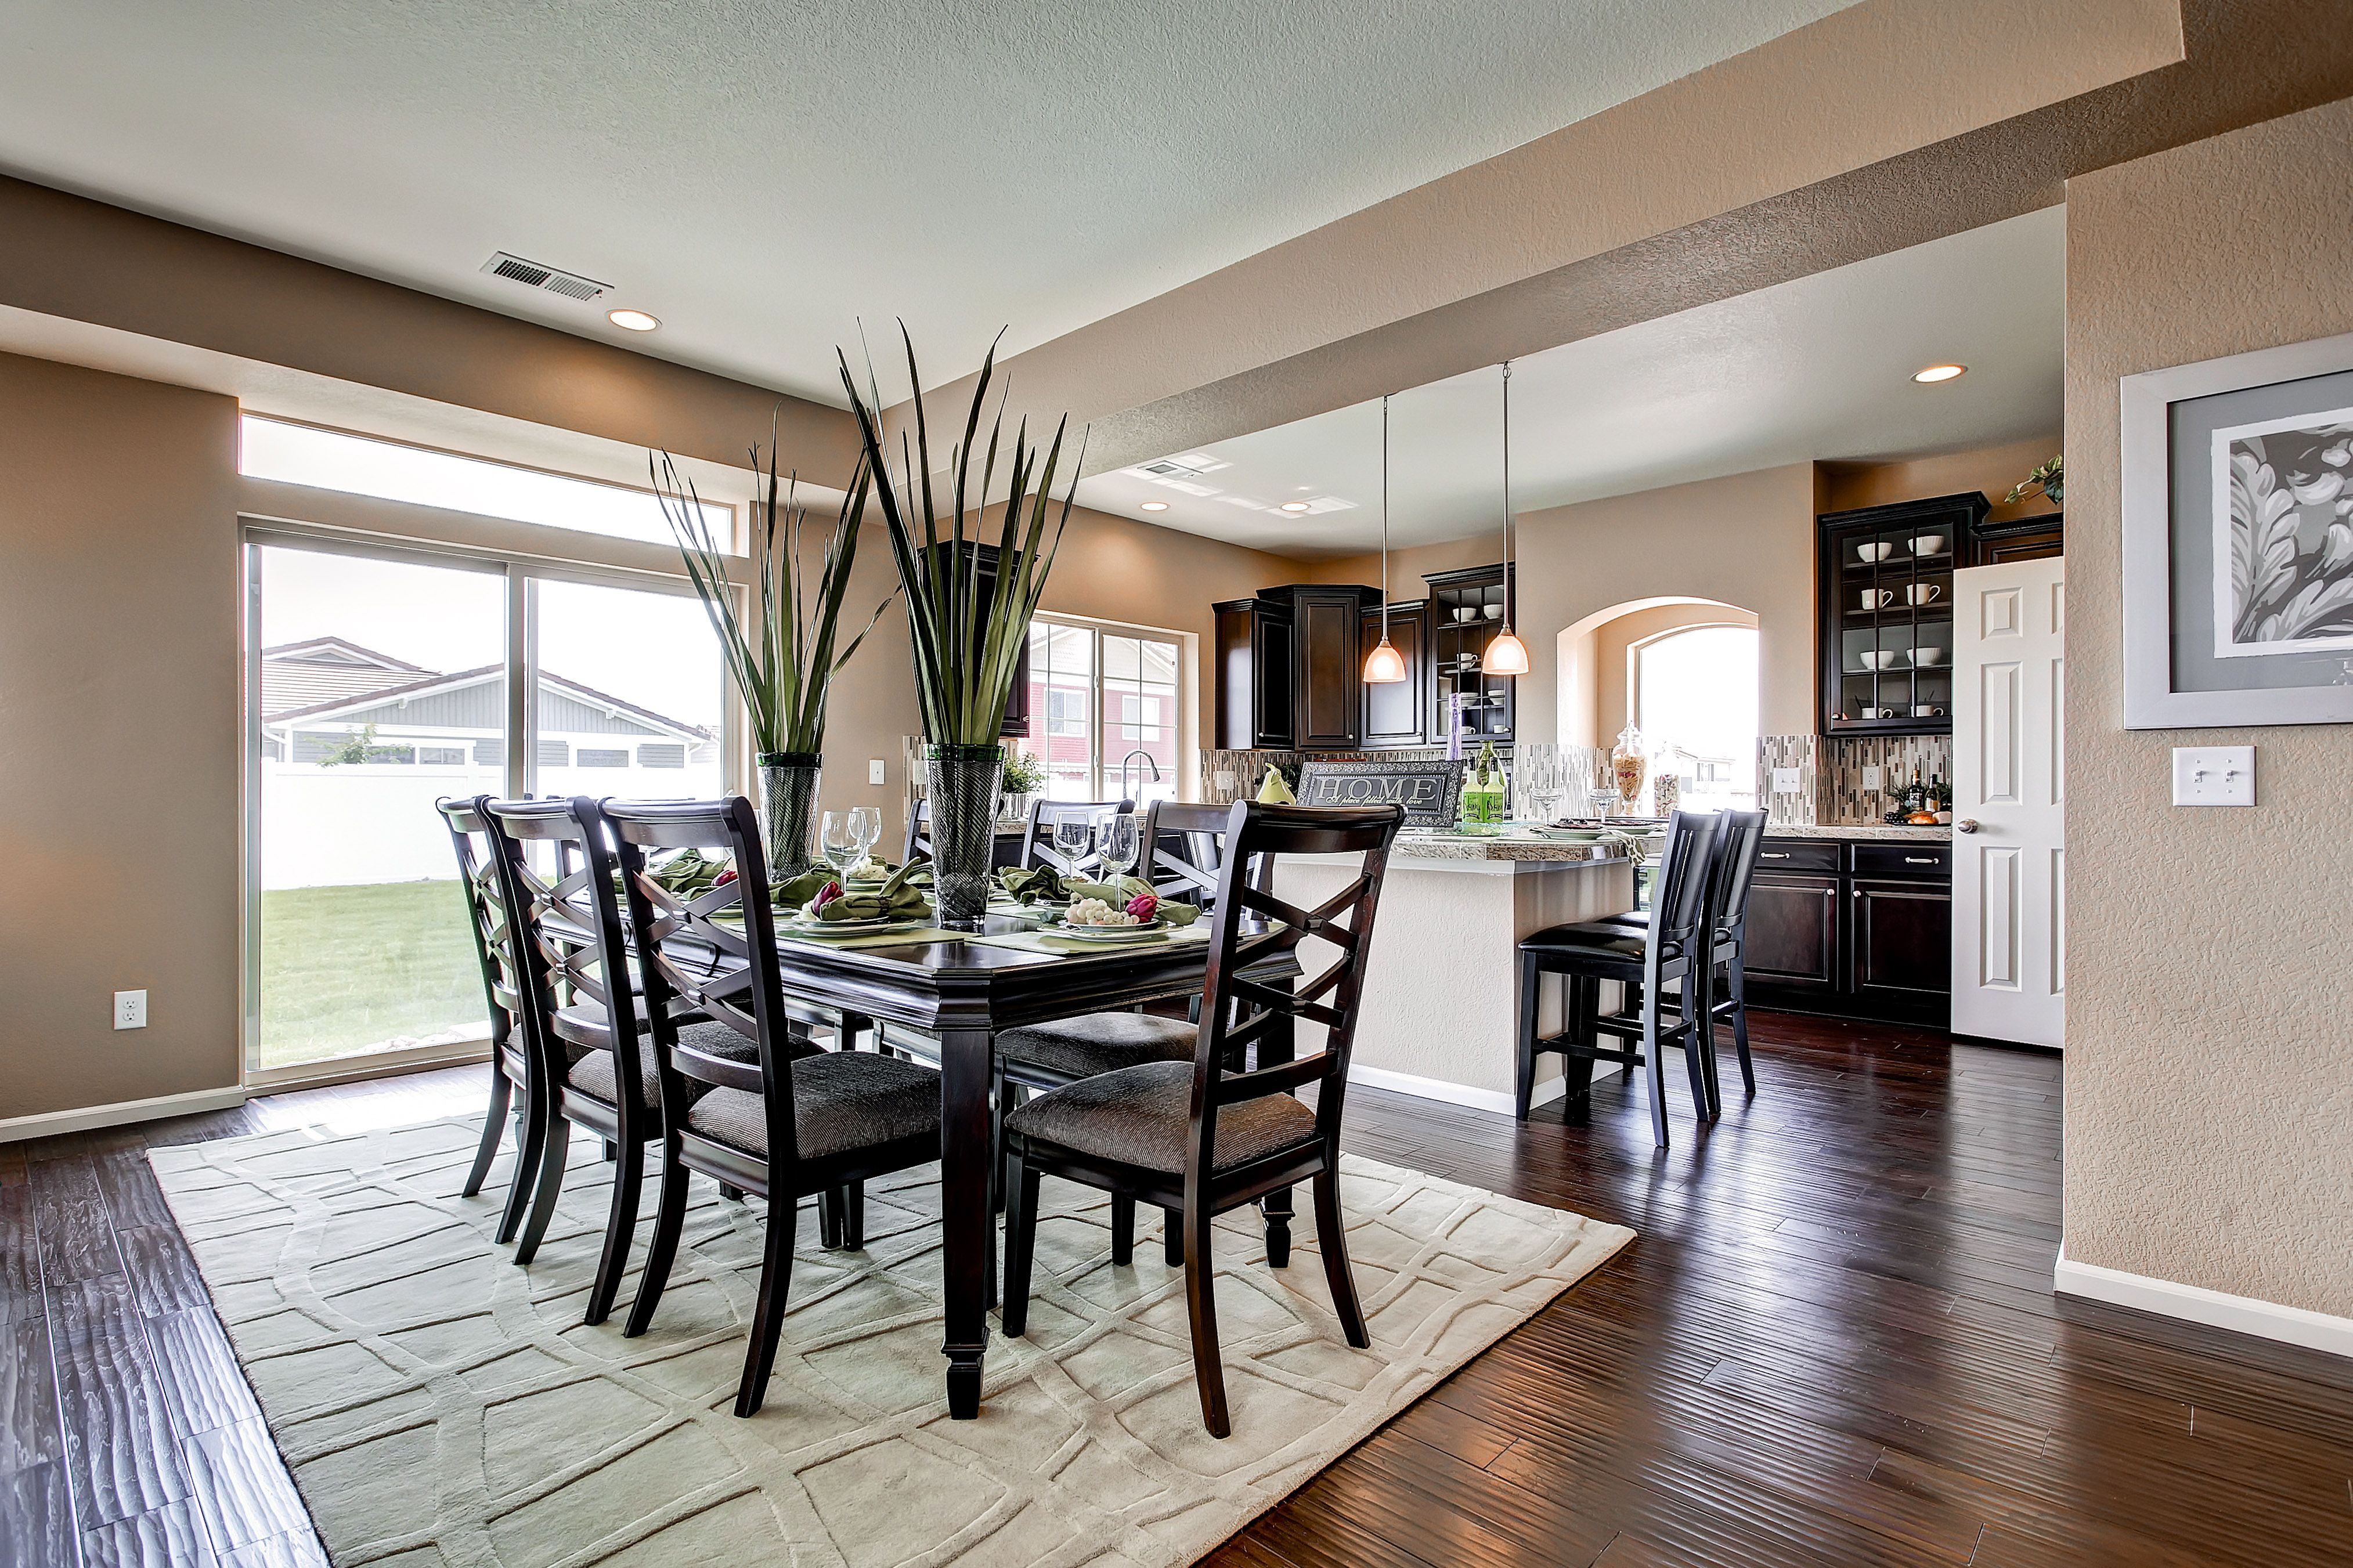 Kitchen And Dining Like The Soffit Between The Kitchen And Dininghardwood Floors And